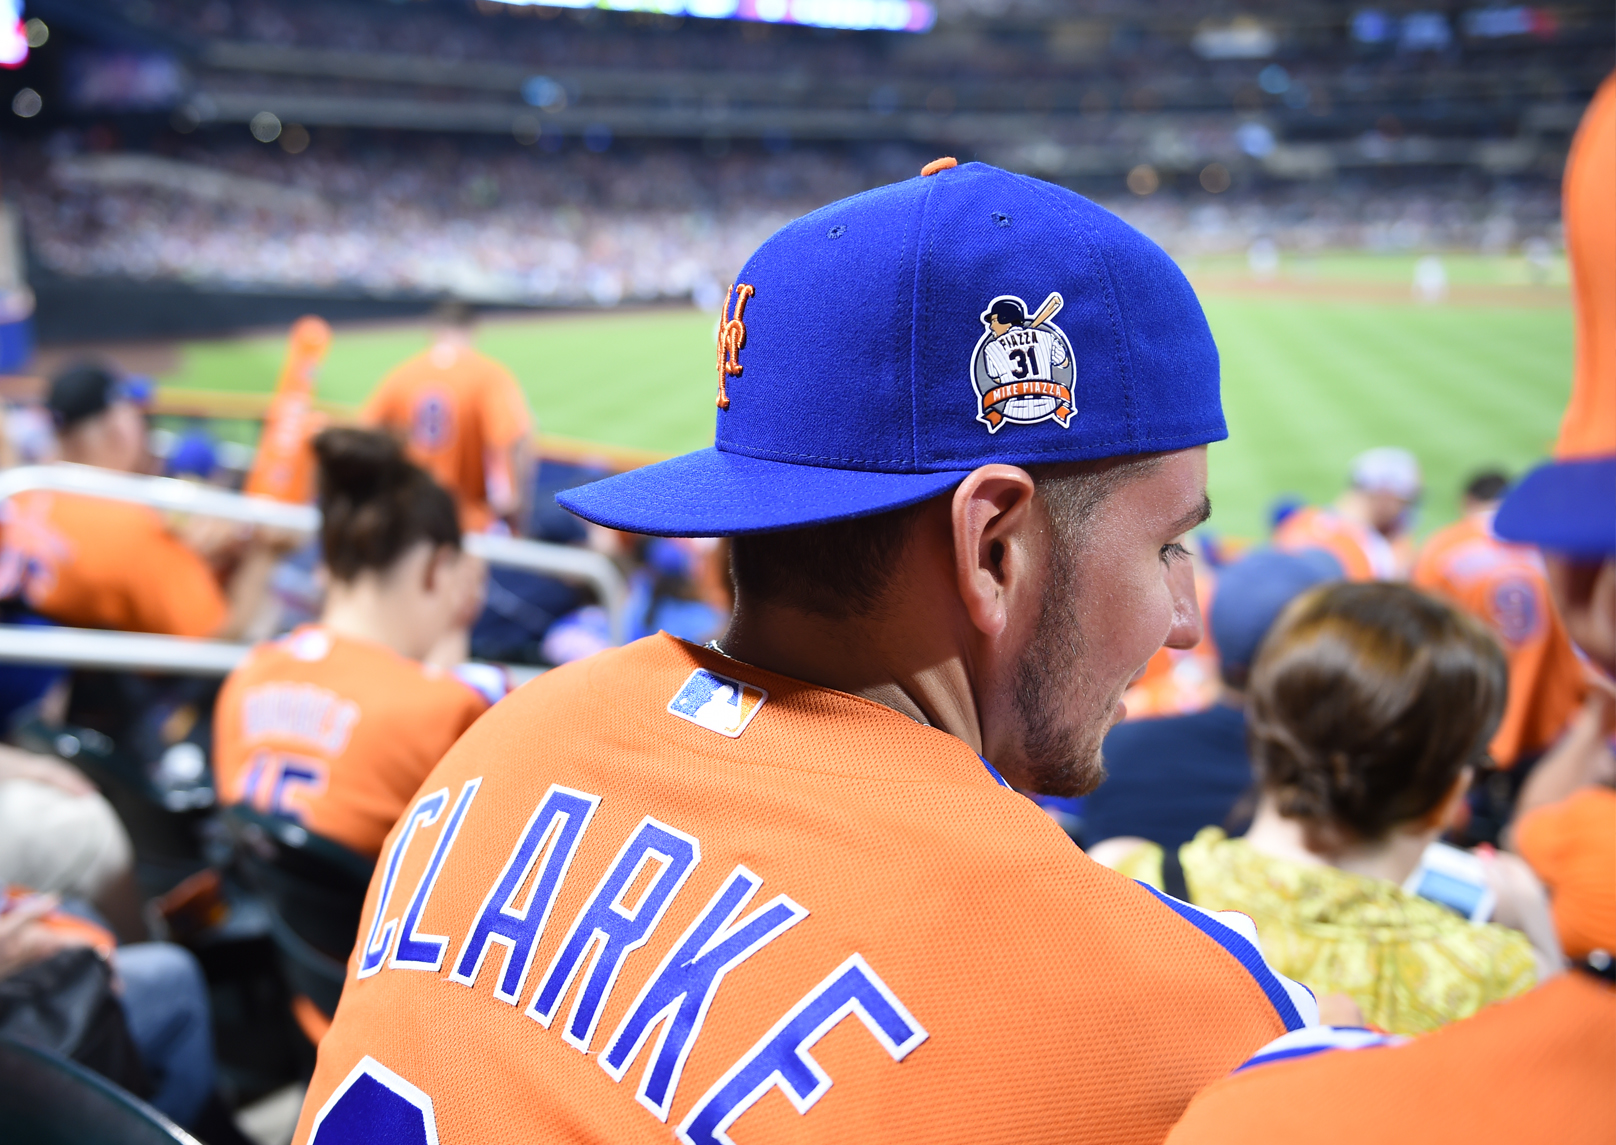 Courtesy of the New York Mets Photography Department /  © NEW YORK METS 2016